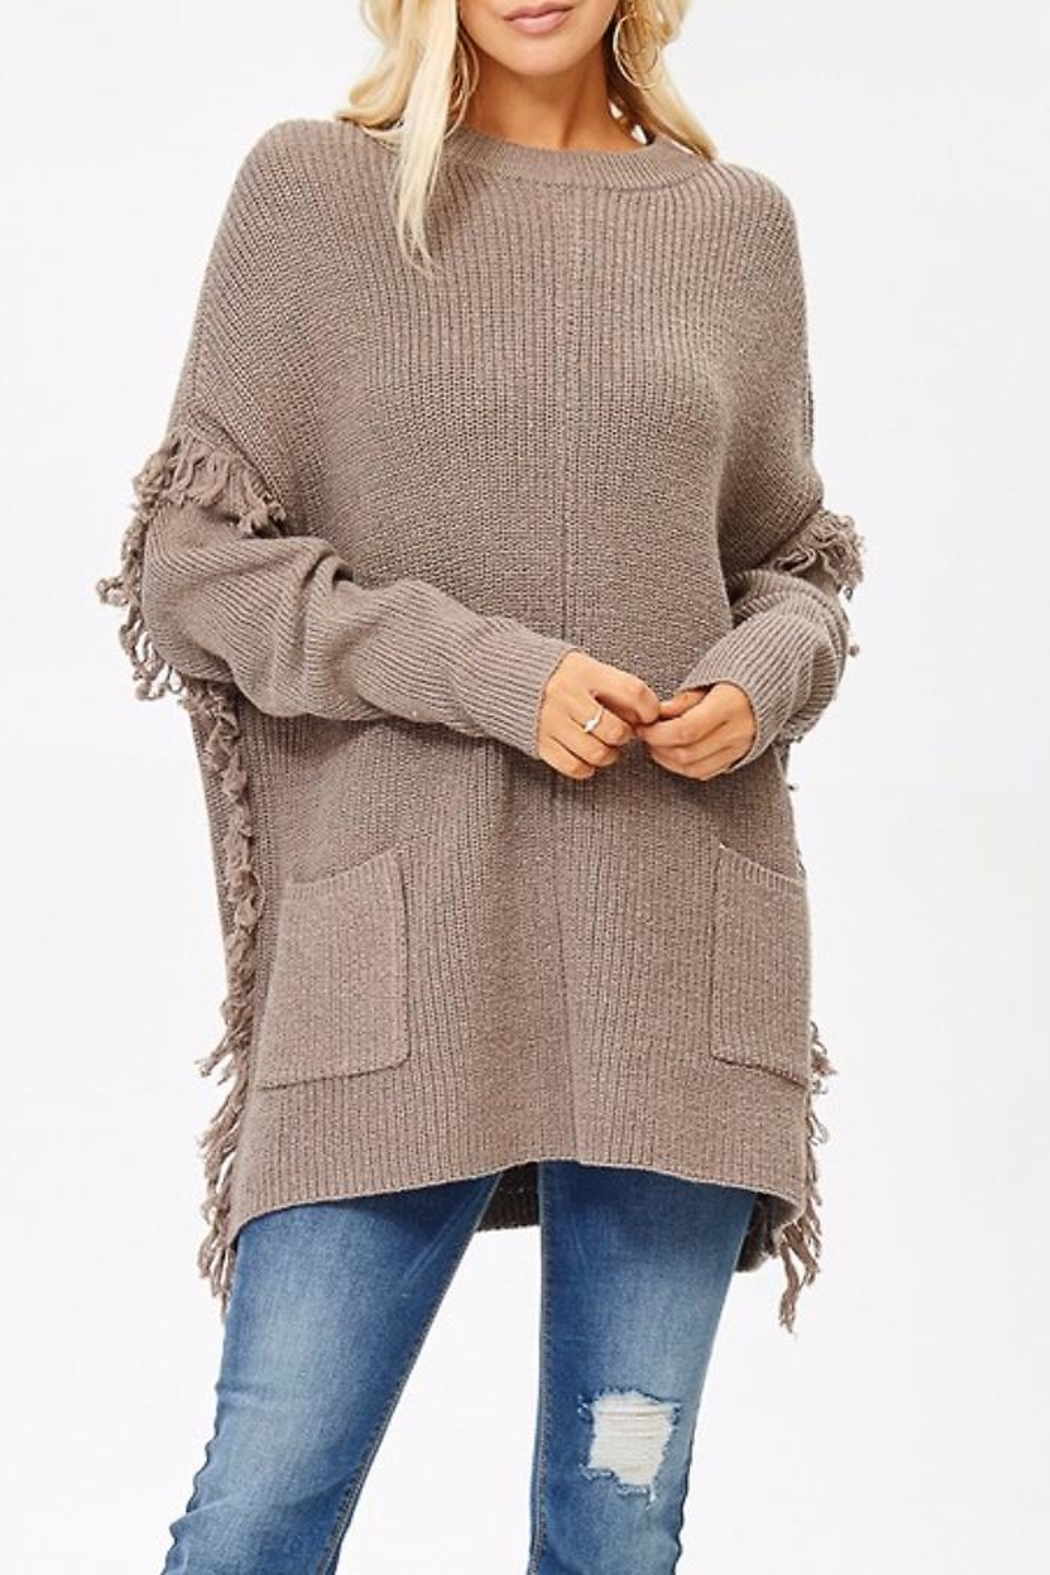 People Outfitter Ella's Long Sweater - Main Image